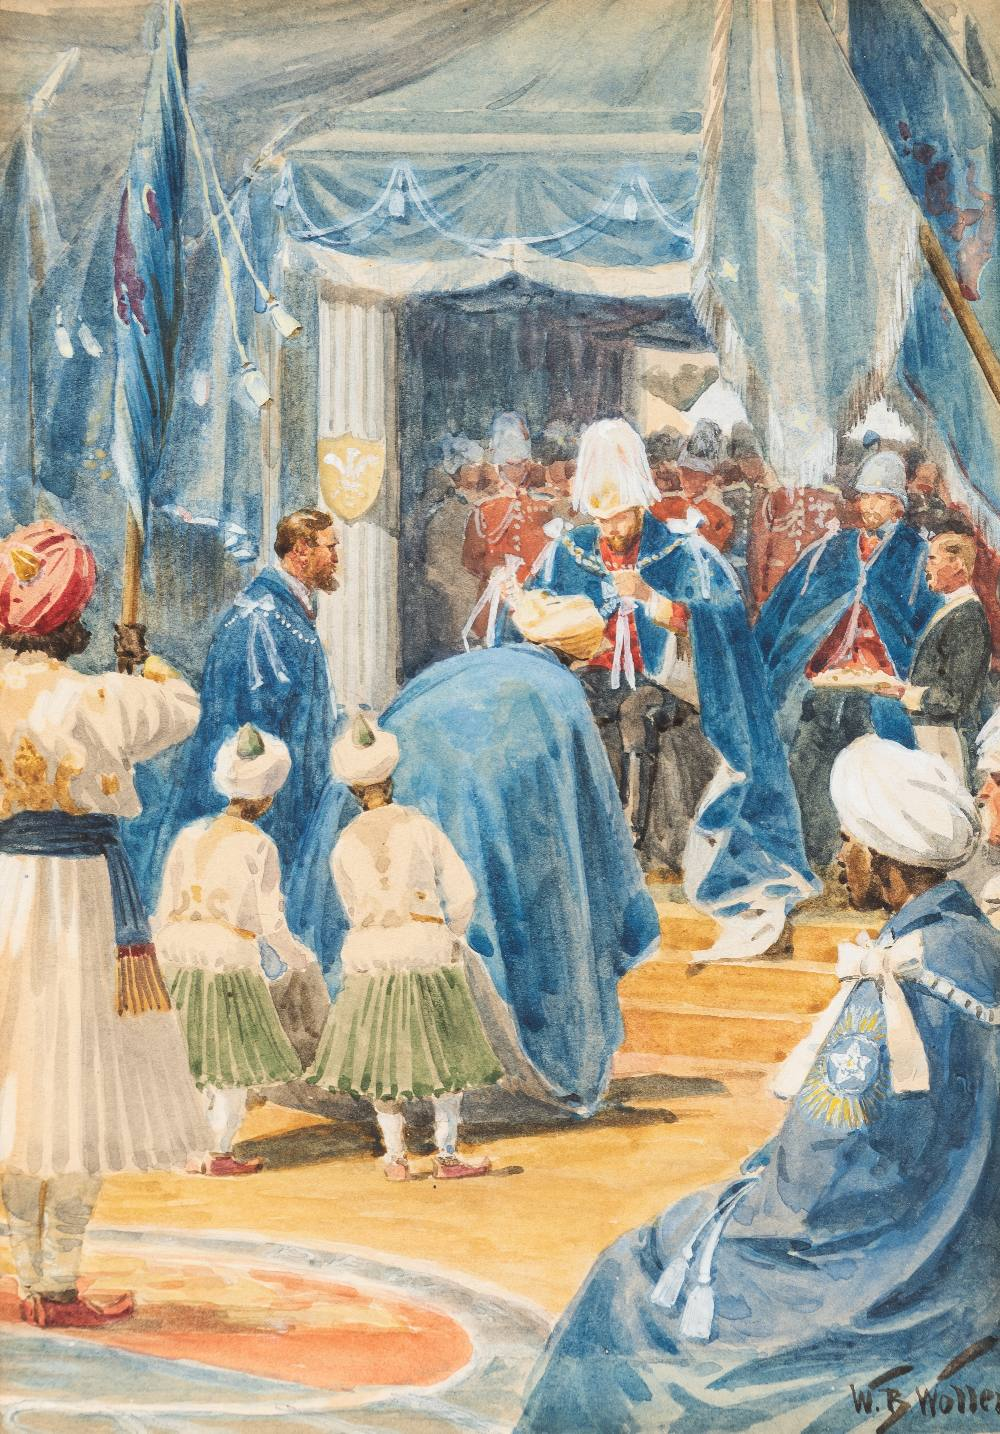 Lot 138 - WILLIAM BARNES WOLLEN, R.I., R.O.I., R.B.C. (1857-1936) THE INVESTITURE OF THE STAR OF INDIA BY